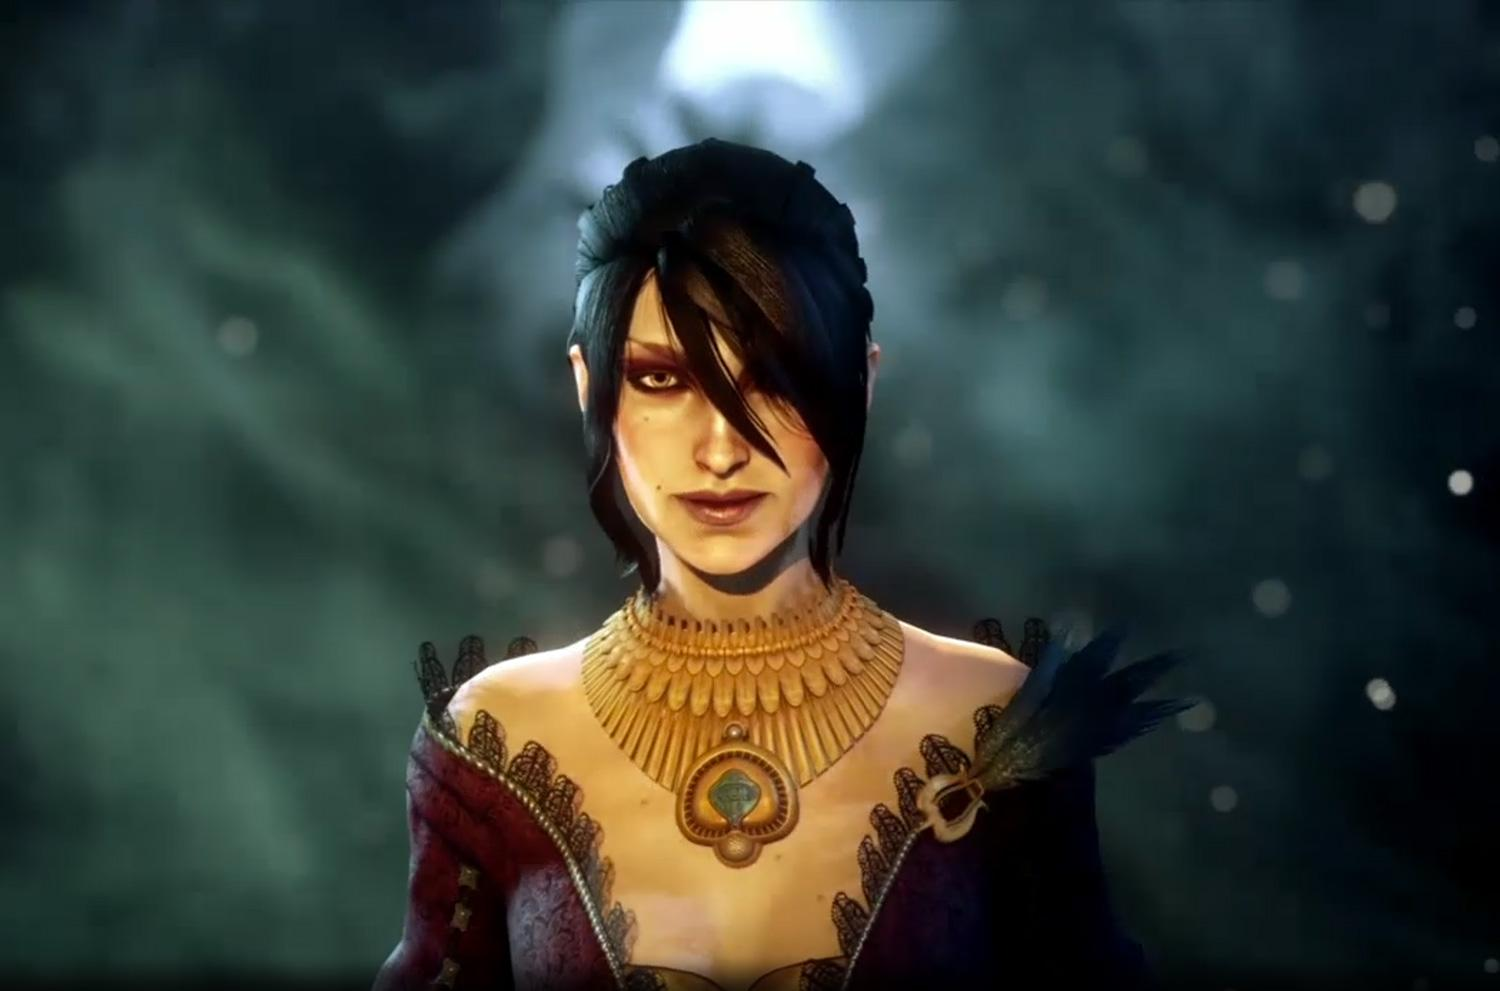 She's had a bit of a makeover, but no doubt Morrigan will still be one of the most awesome characters in the game!